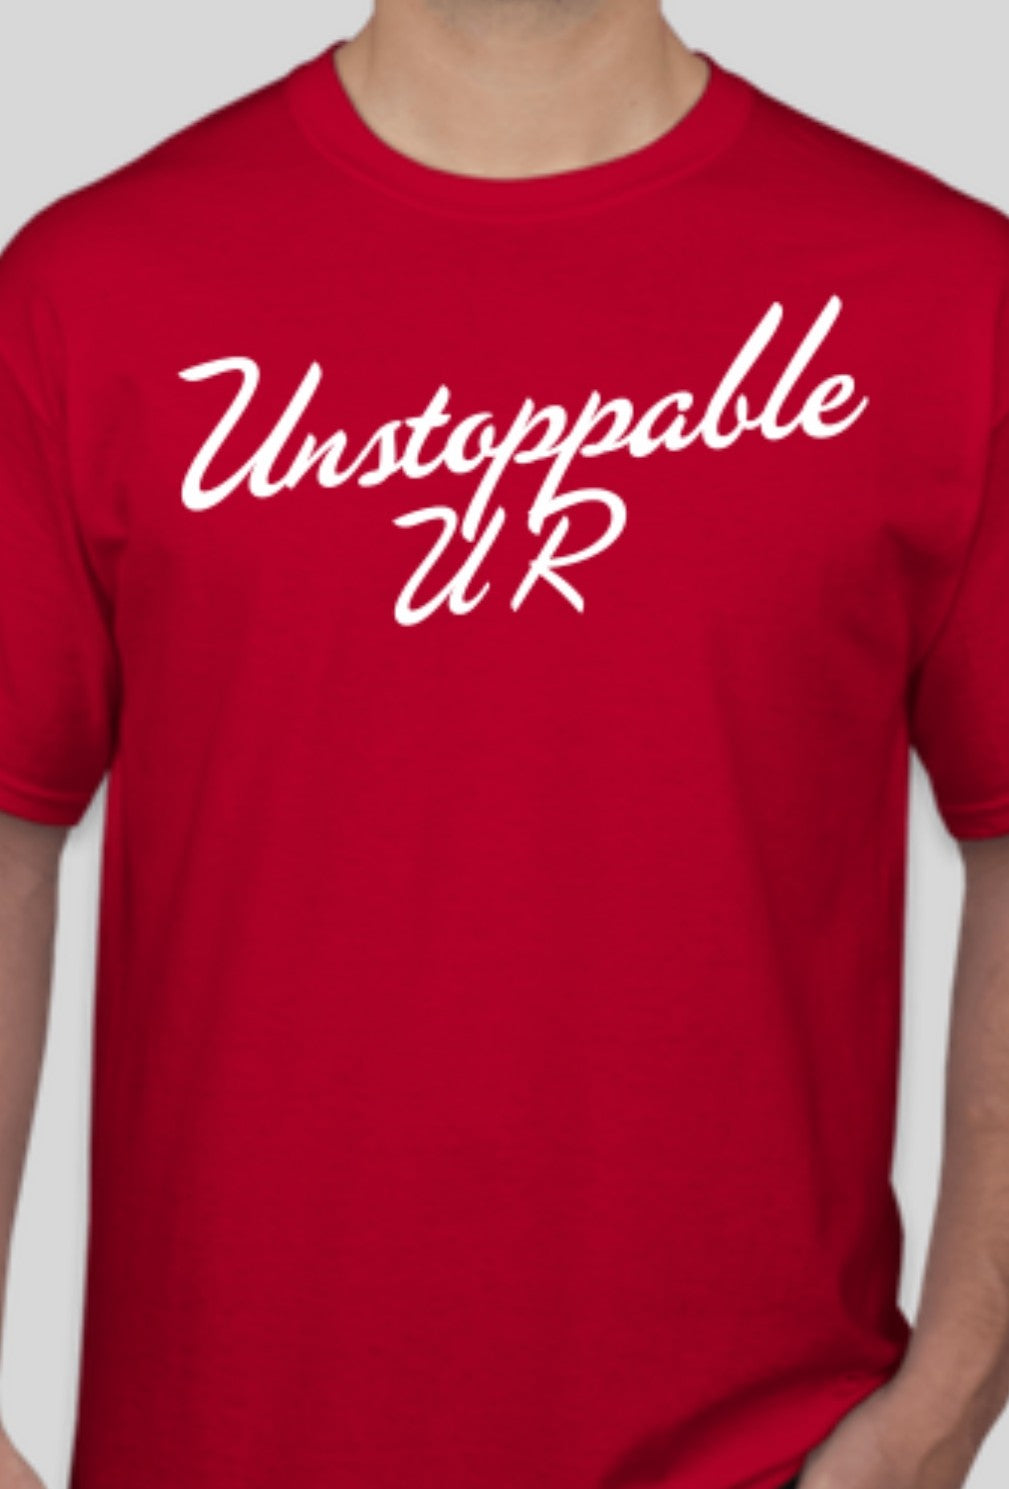 U R Unstoppable Red T-shirt